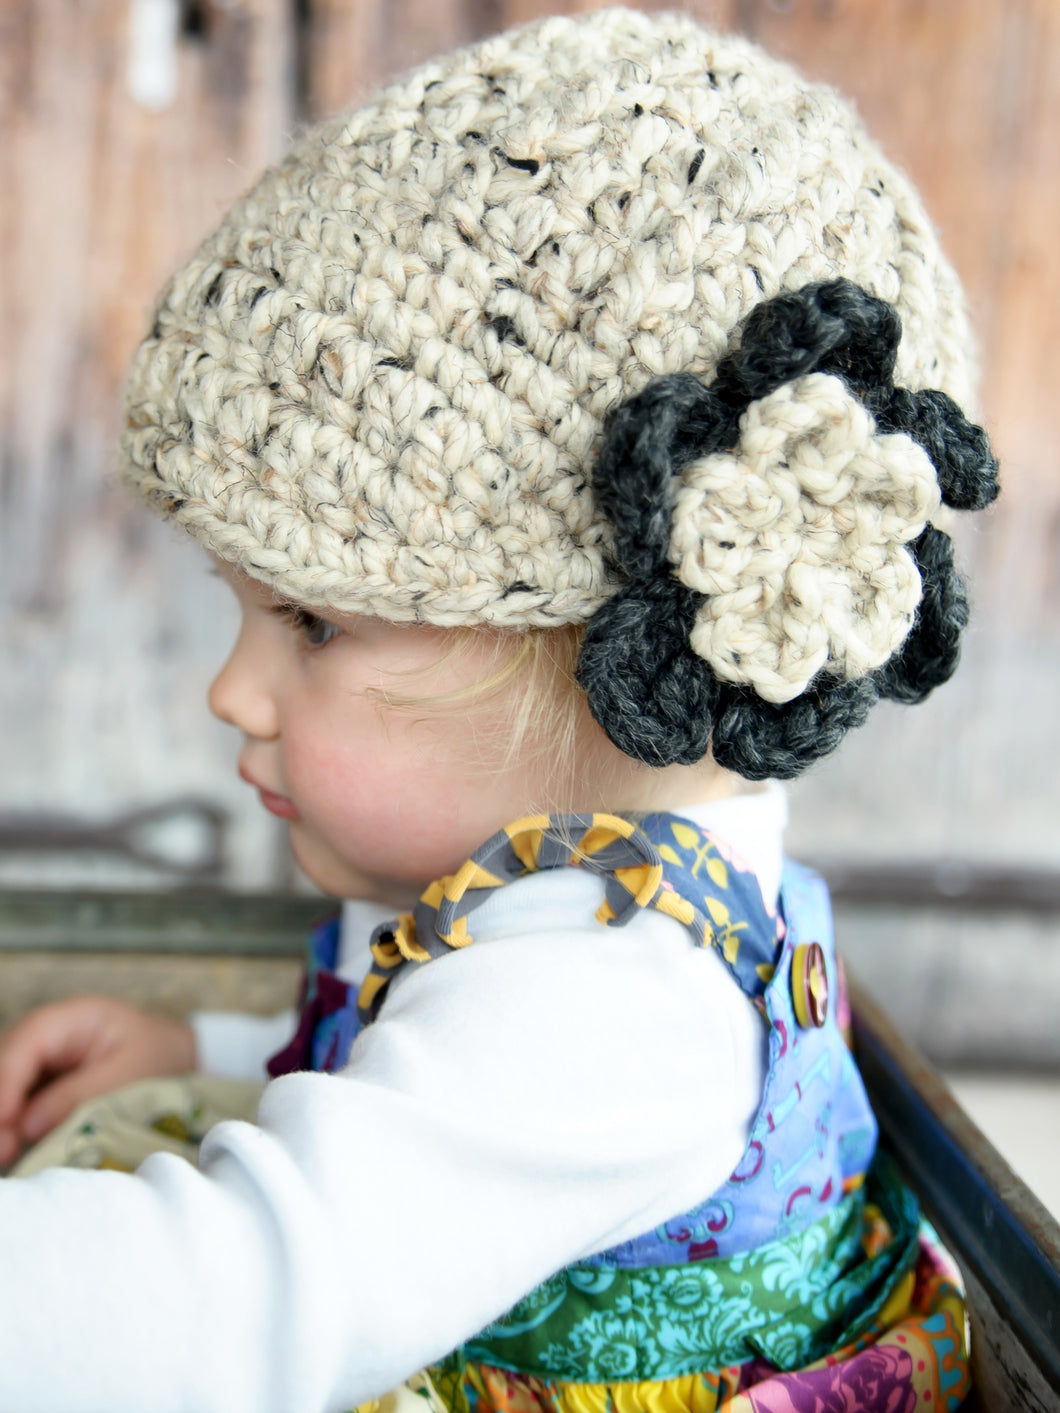 Custom flower beanie | chunky crochet thick winter hat | baby, toddler, girl's, women's sizes | 34 trendy colors available by Two Seaside Babes